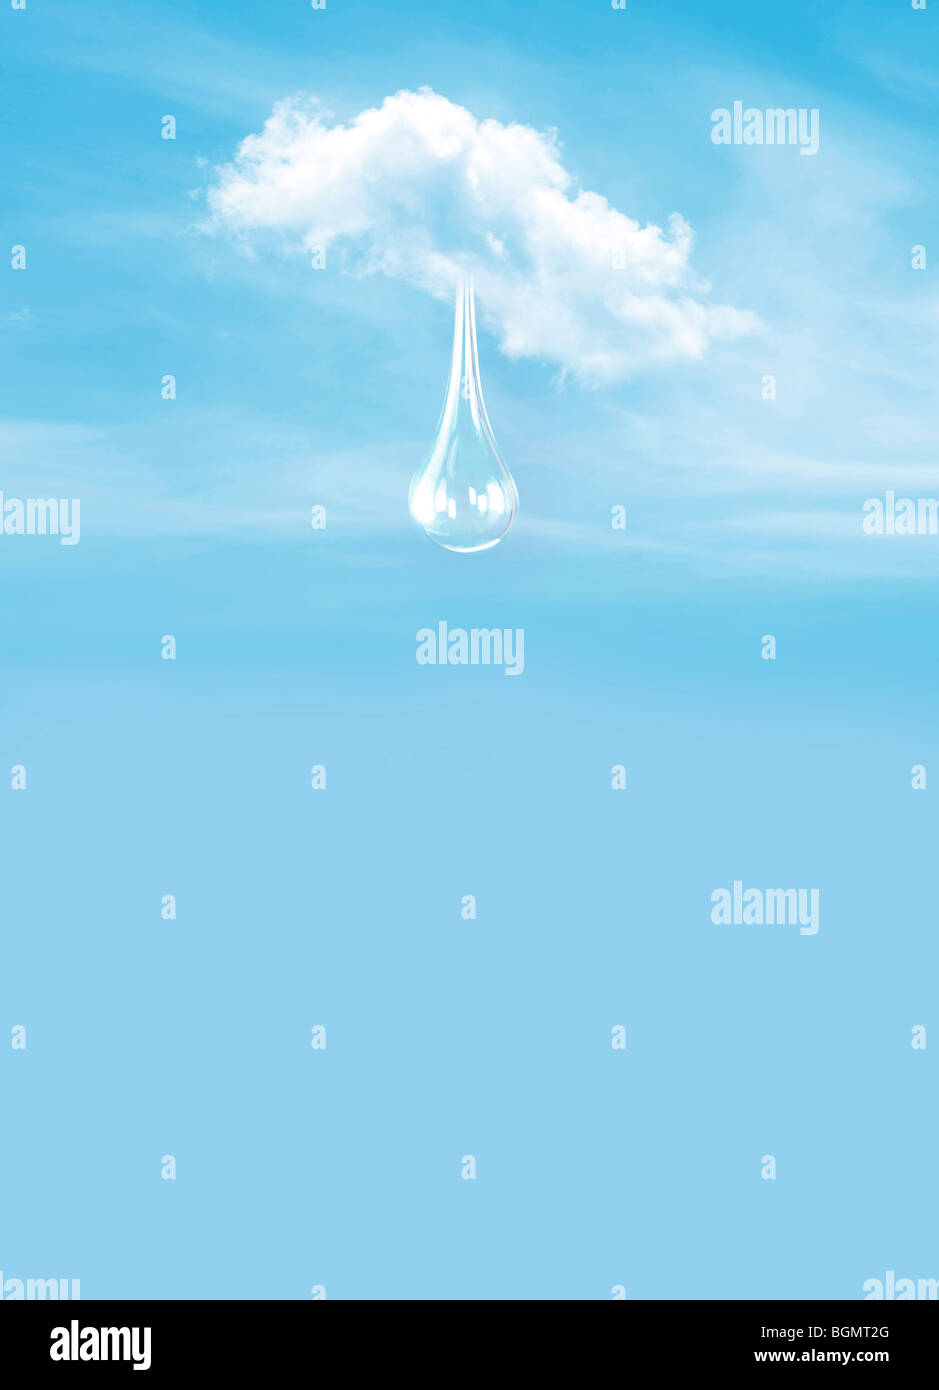 giant water droplet comes from a cloud - Stock Image